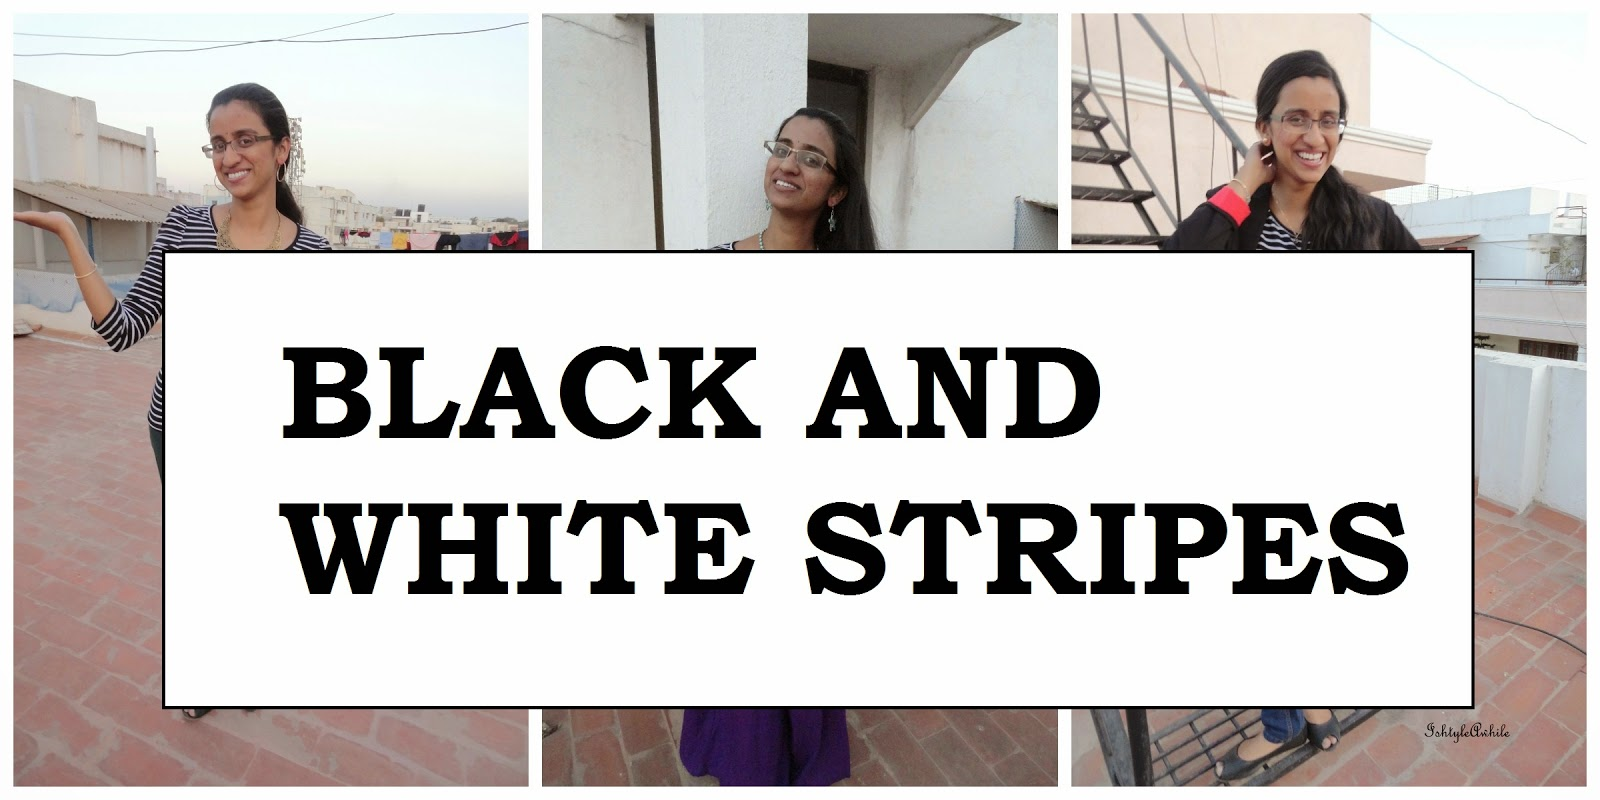 AVATAR #5: Black and white stripes tee shirt - Styling with Pants edition image